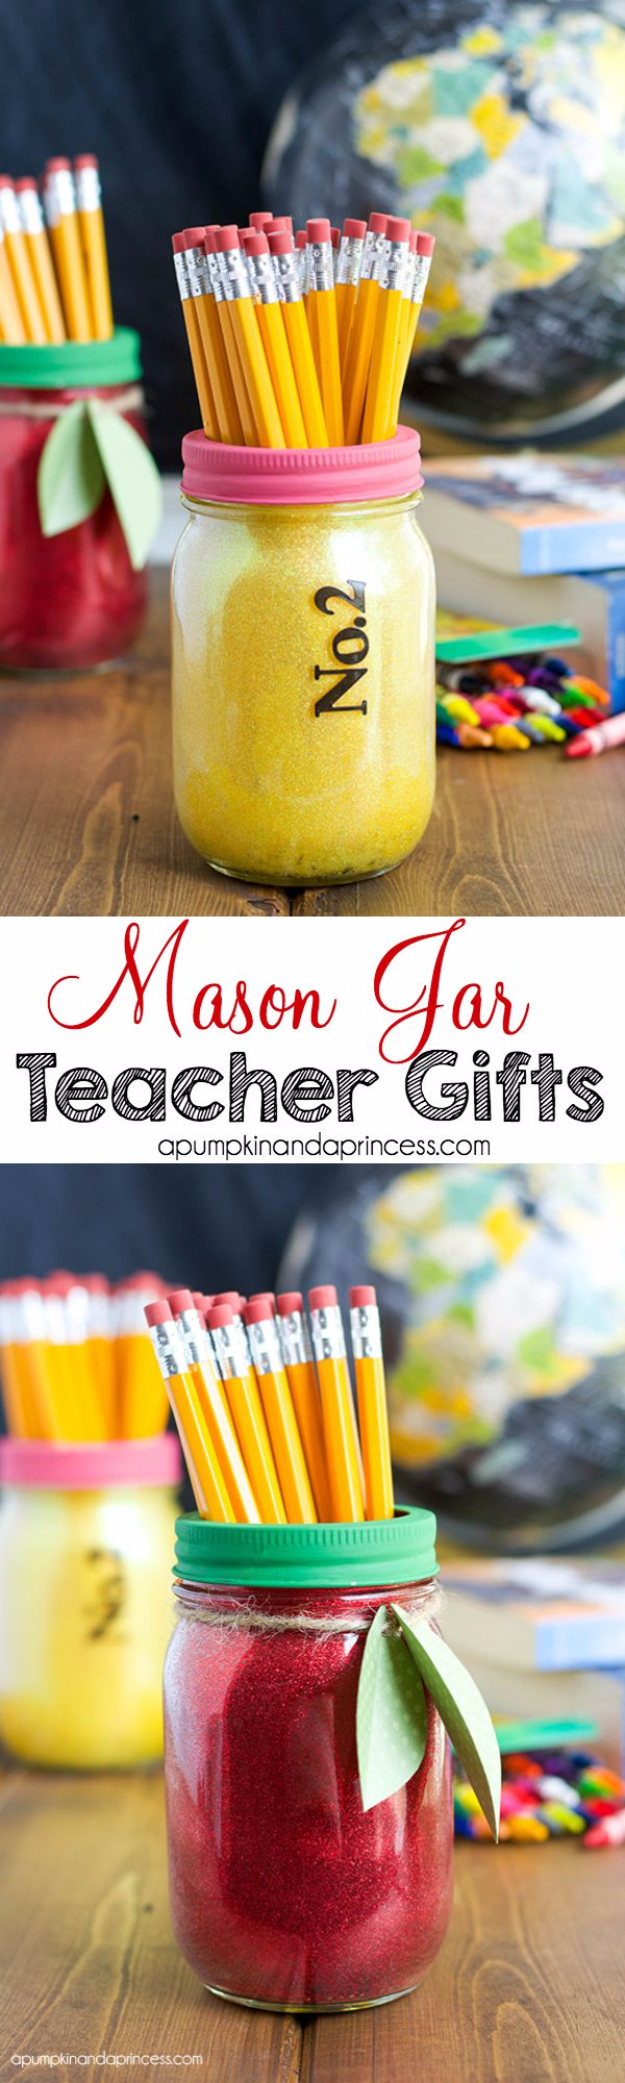 DIY Teacher Gifts - Glitter Mason Jar Teacher Gifts - Cheap and Easy Presents and DIY Gift Ideas for Teachers at Christmas, End of Year, First Day and Birthday - Teacher Appreciation Gifts and Crafts - Cute Mason Jar Ideas and Thoughtful, Unique Gifts from Kids #diygifts #teachersgifts #diyideas #cheapgifts